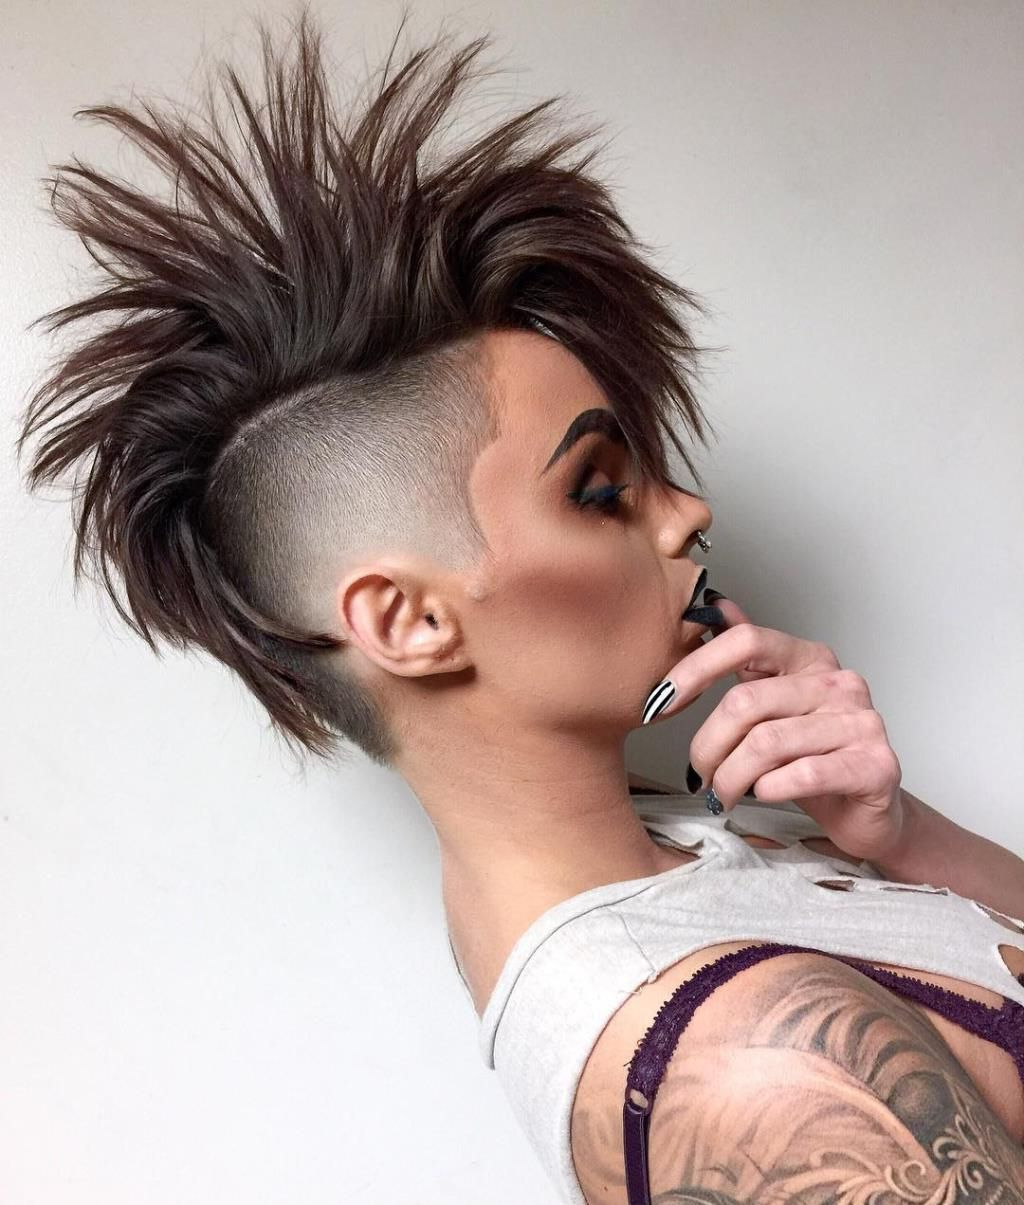 Haircut, Headshave And Bald Fetish In Most Recent Work Of Art Mohawk Hairstyles (View 7 of 20)